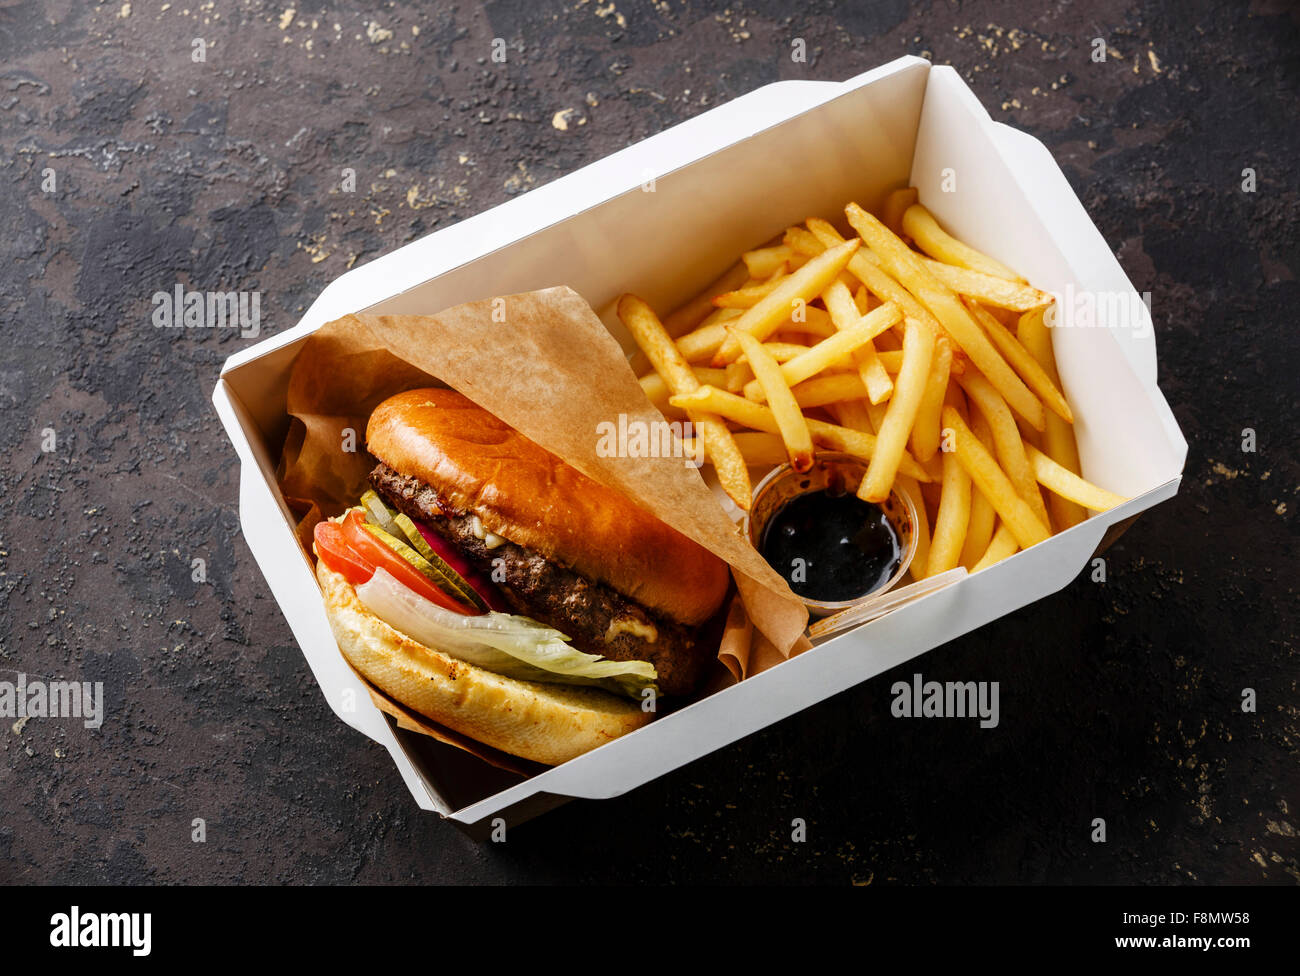 Burger with meat and French fries in paper box on dark background - Stock Image